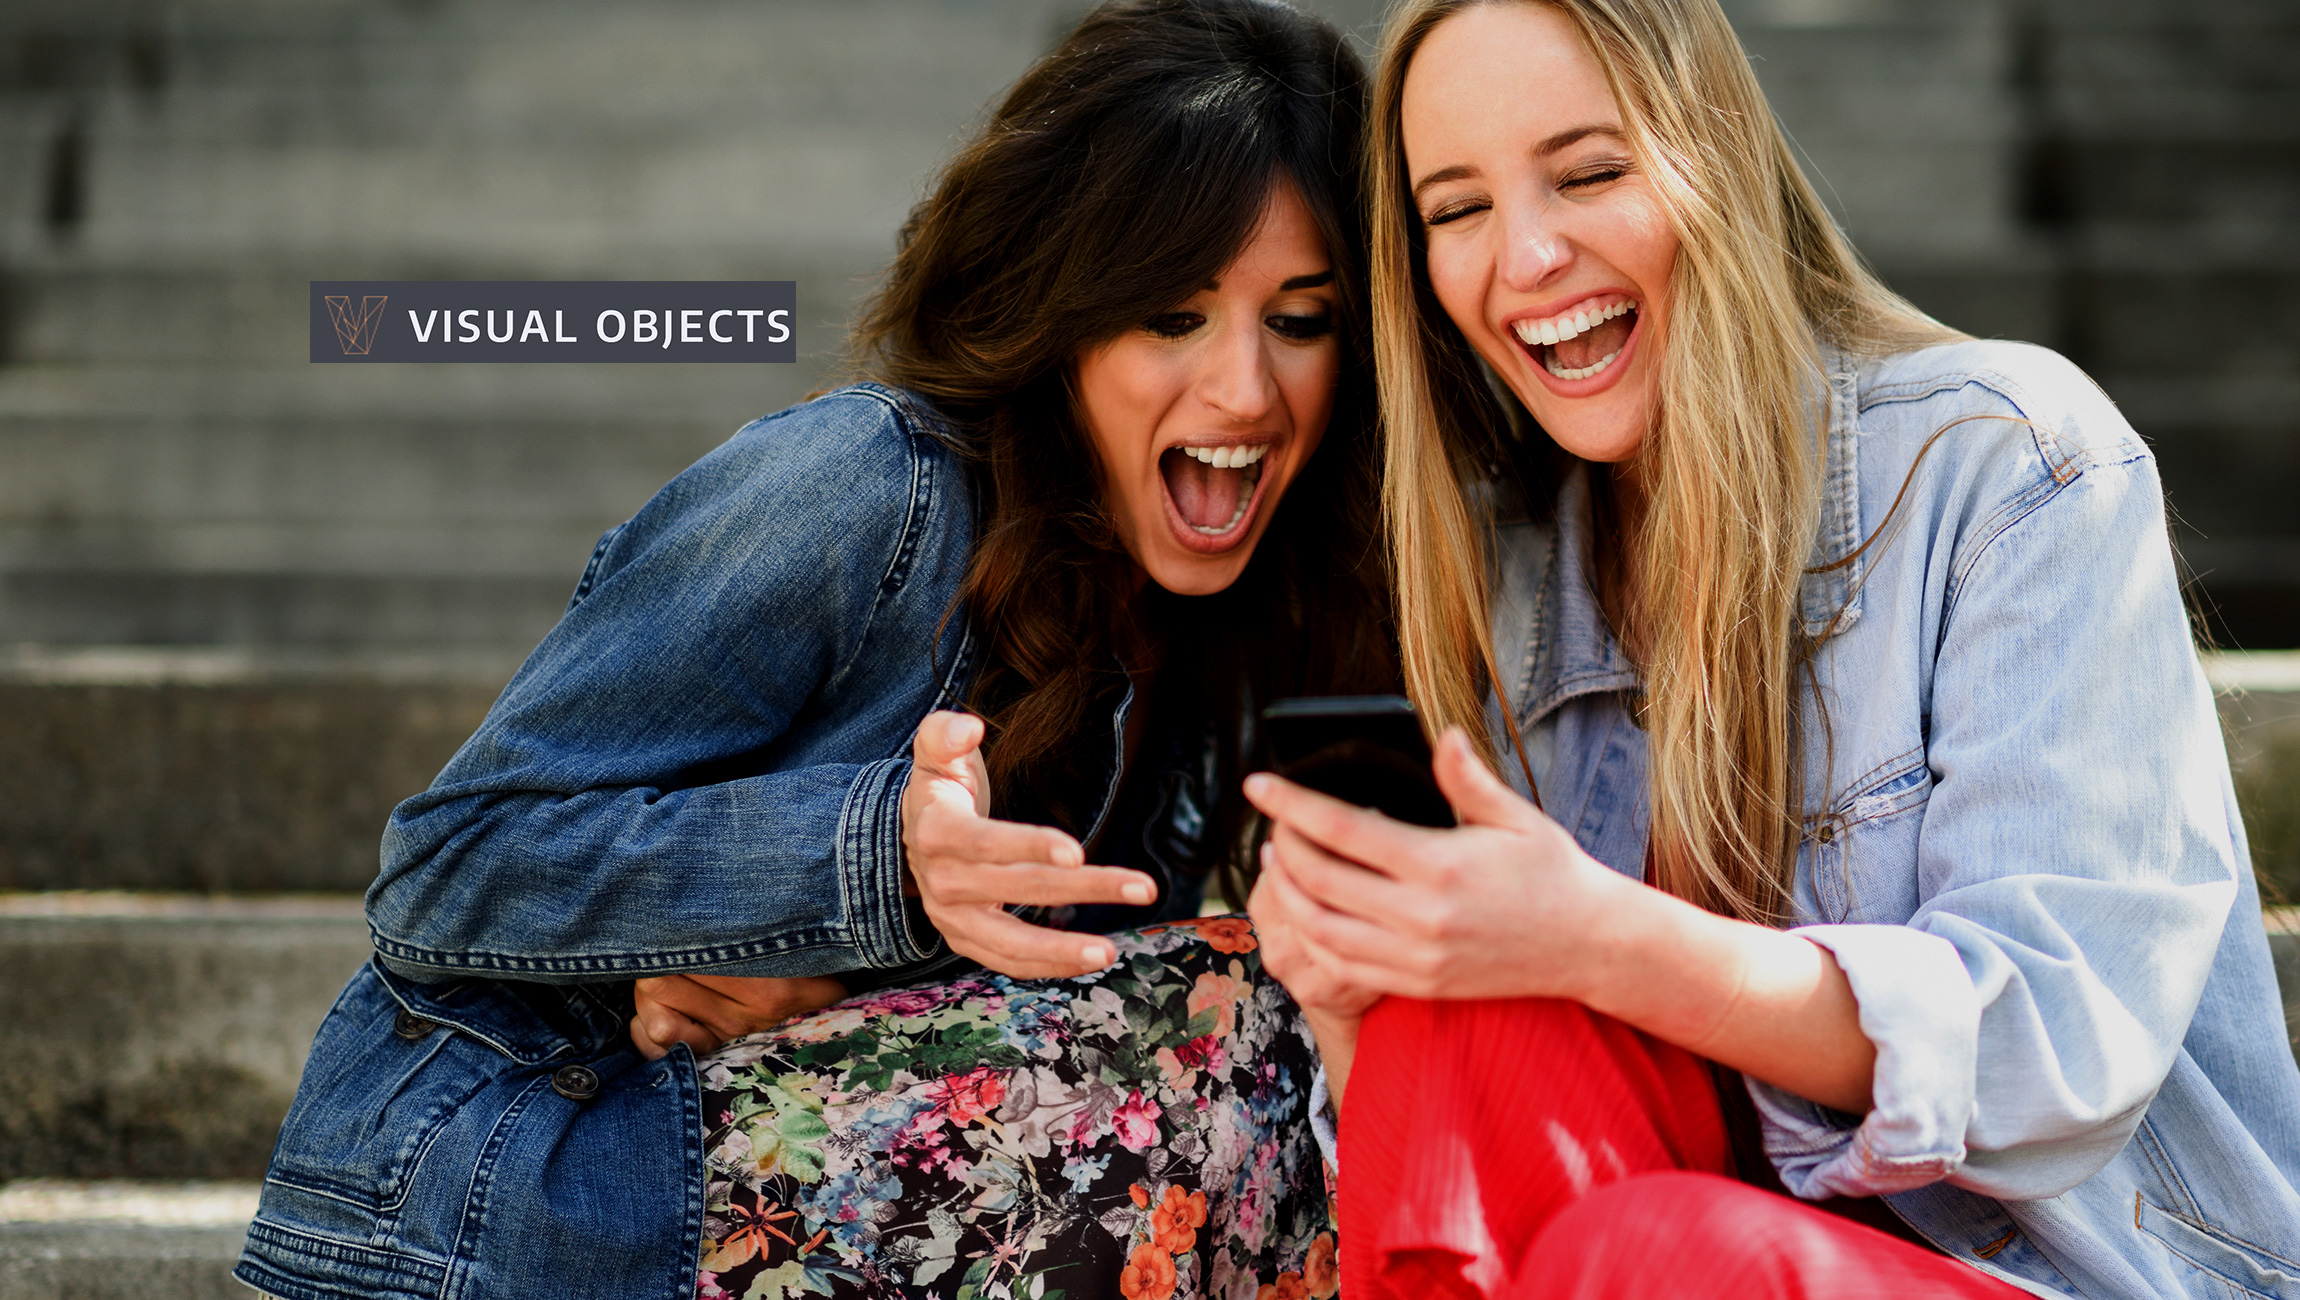 Offers and Promotions on Social Media Don't Influence Millennials